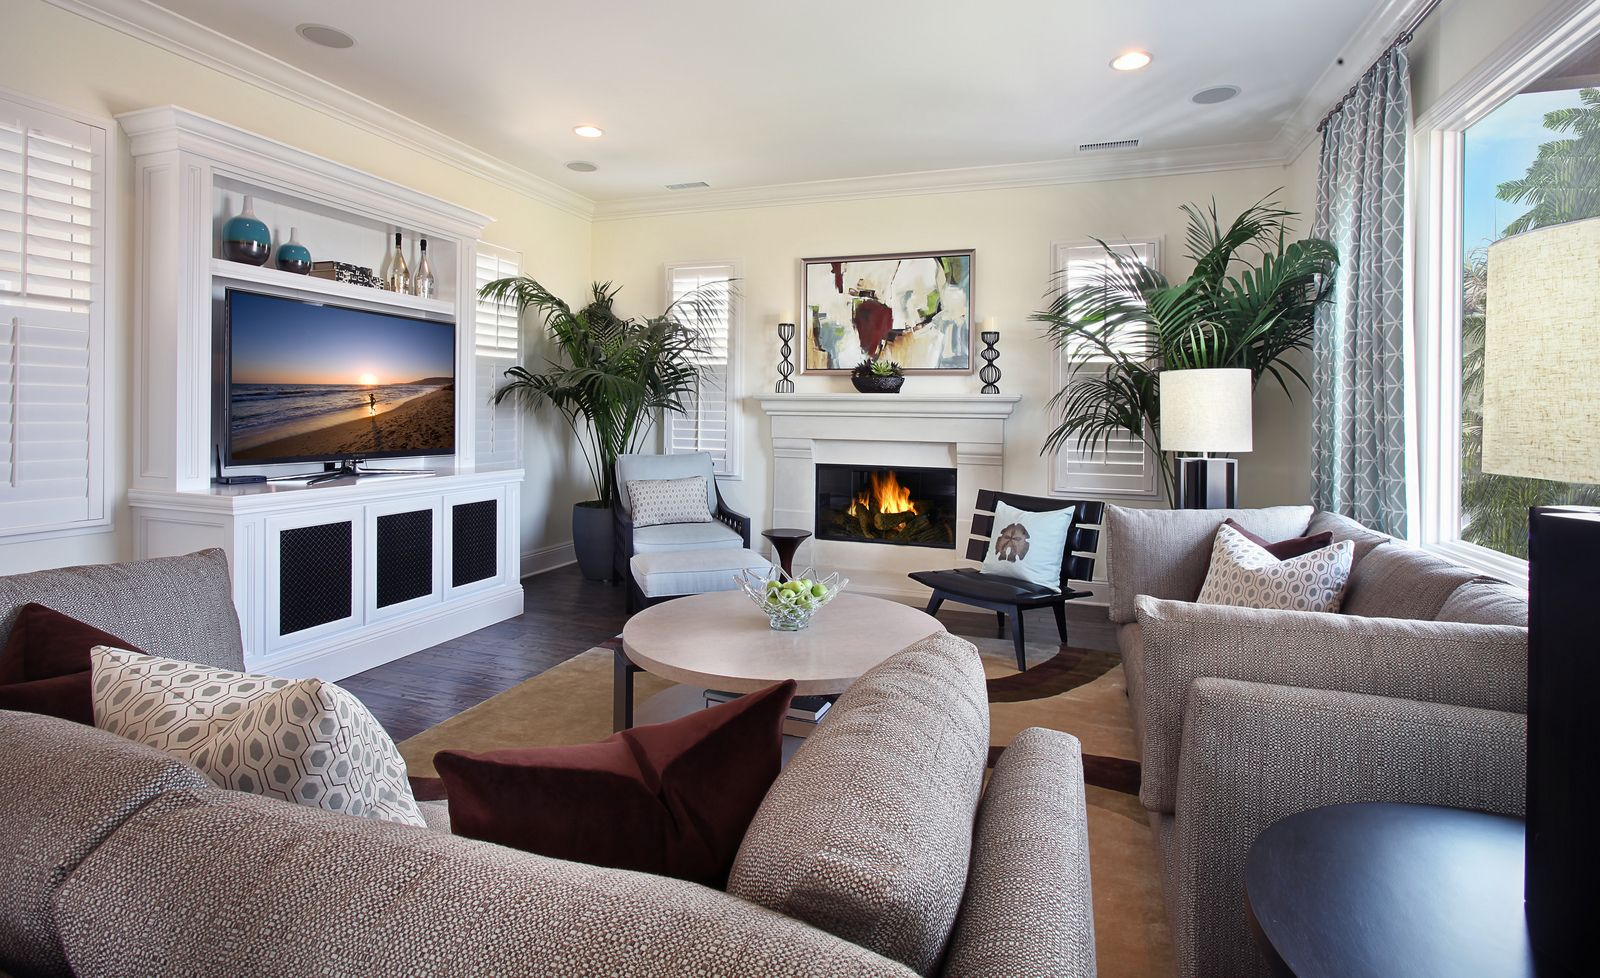 White Living Room Interior Decorating Ideas With Flat Screen Tv